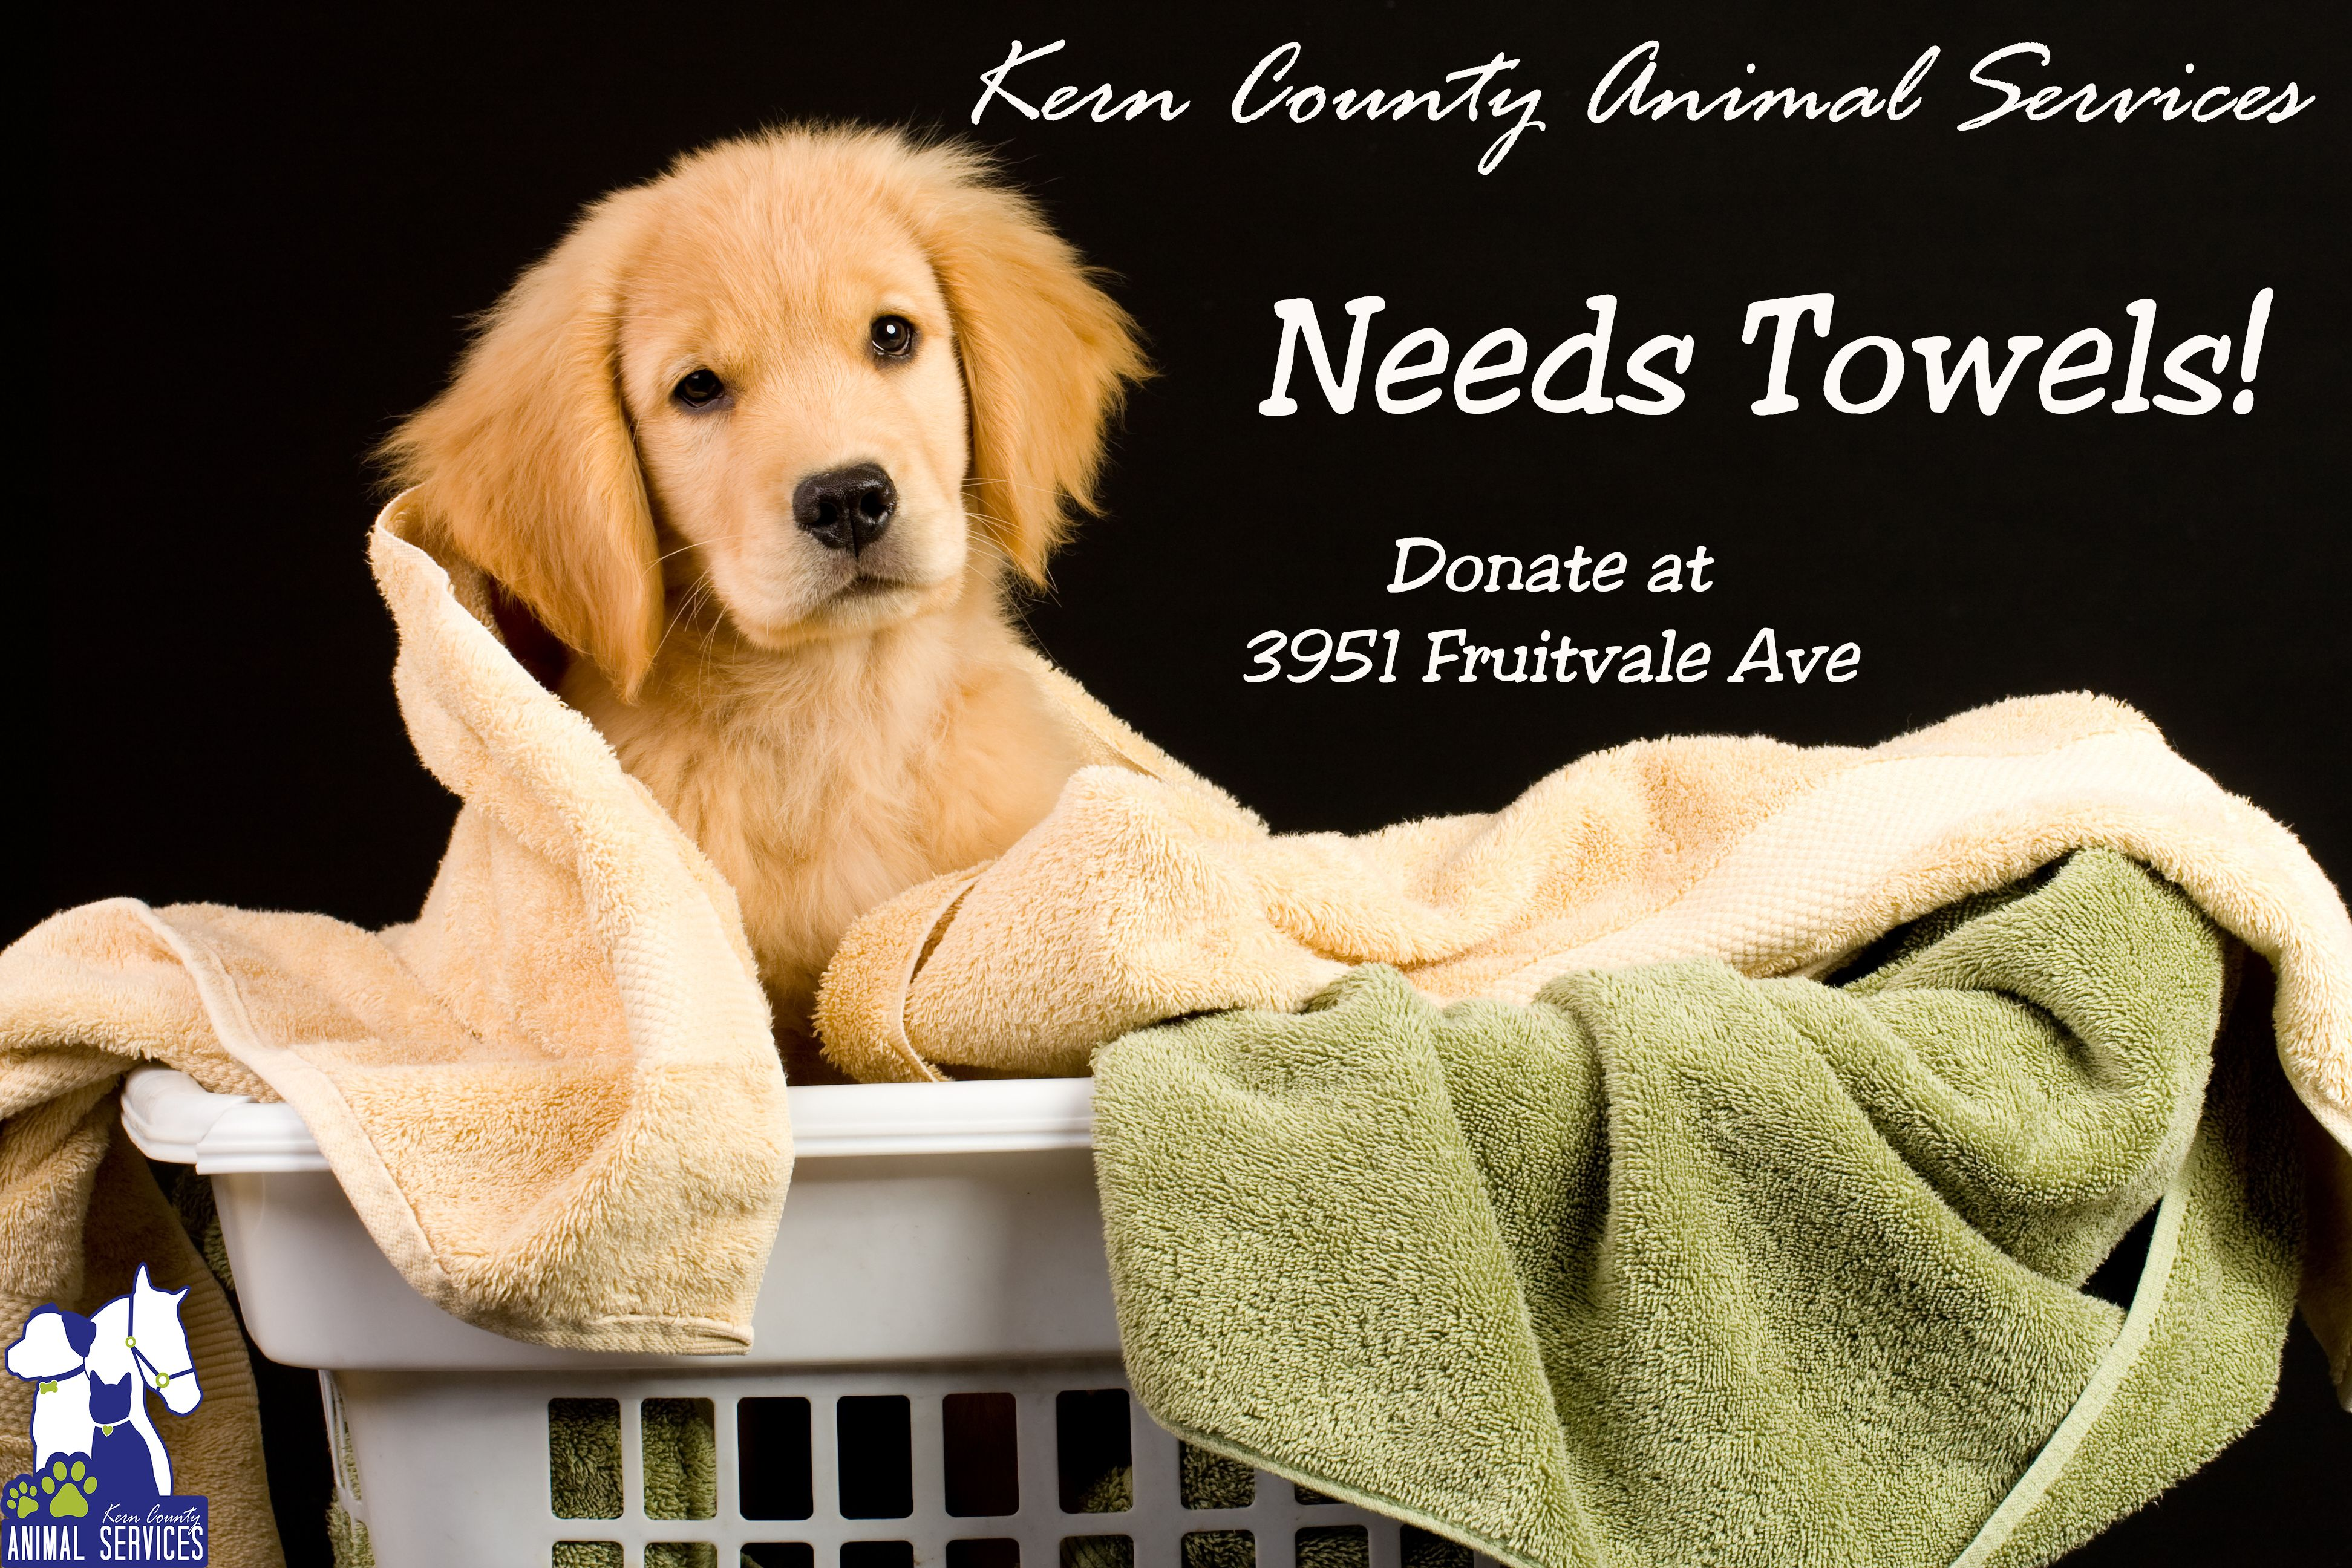 Donations Needed With Dog Picture Image